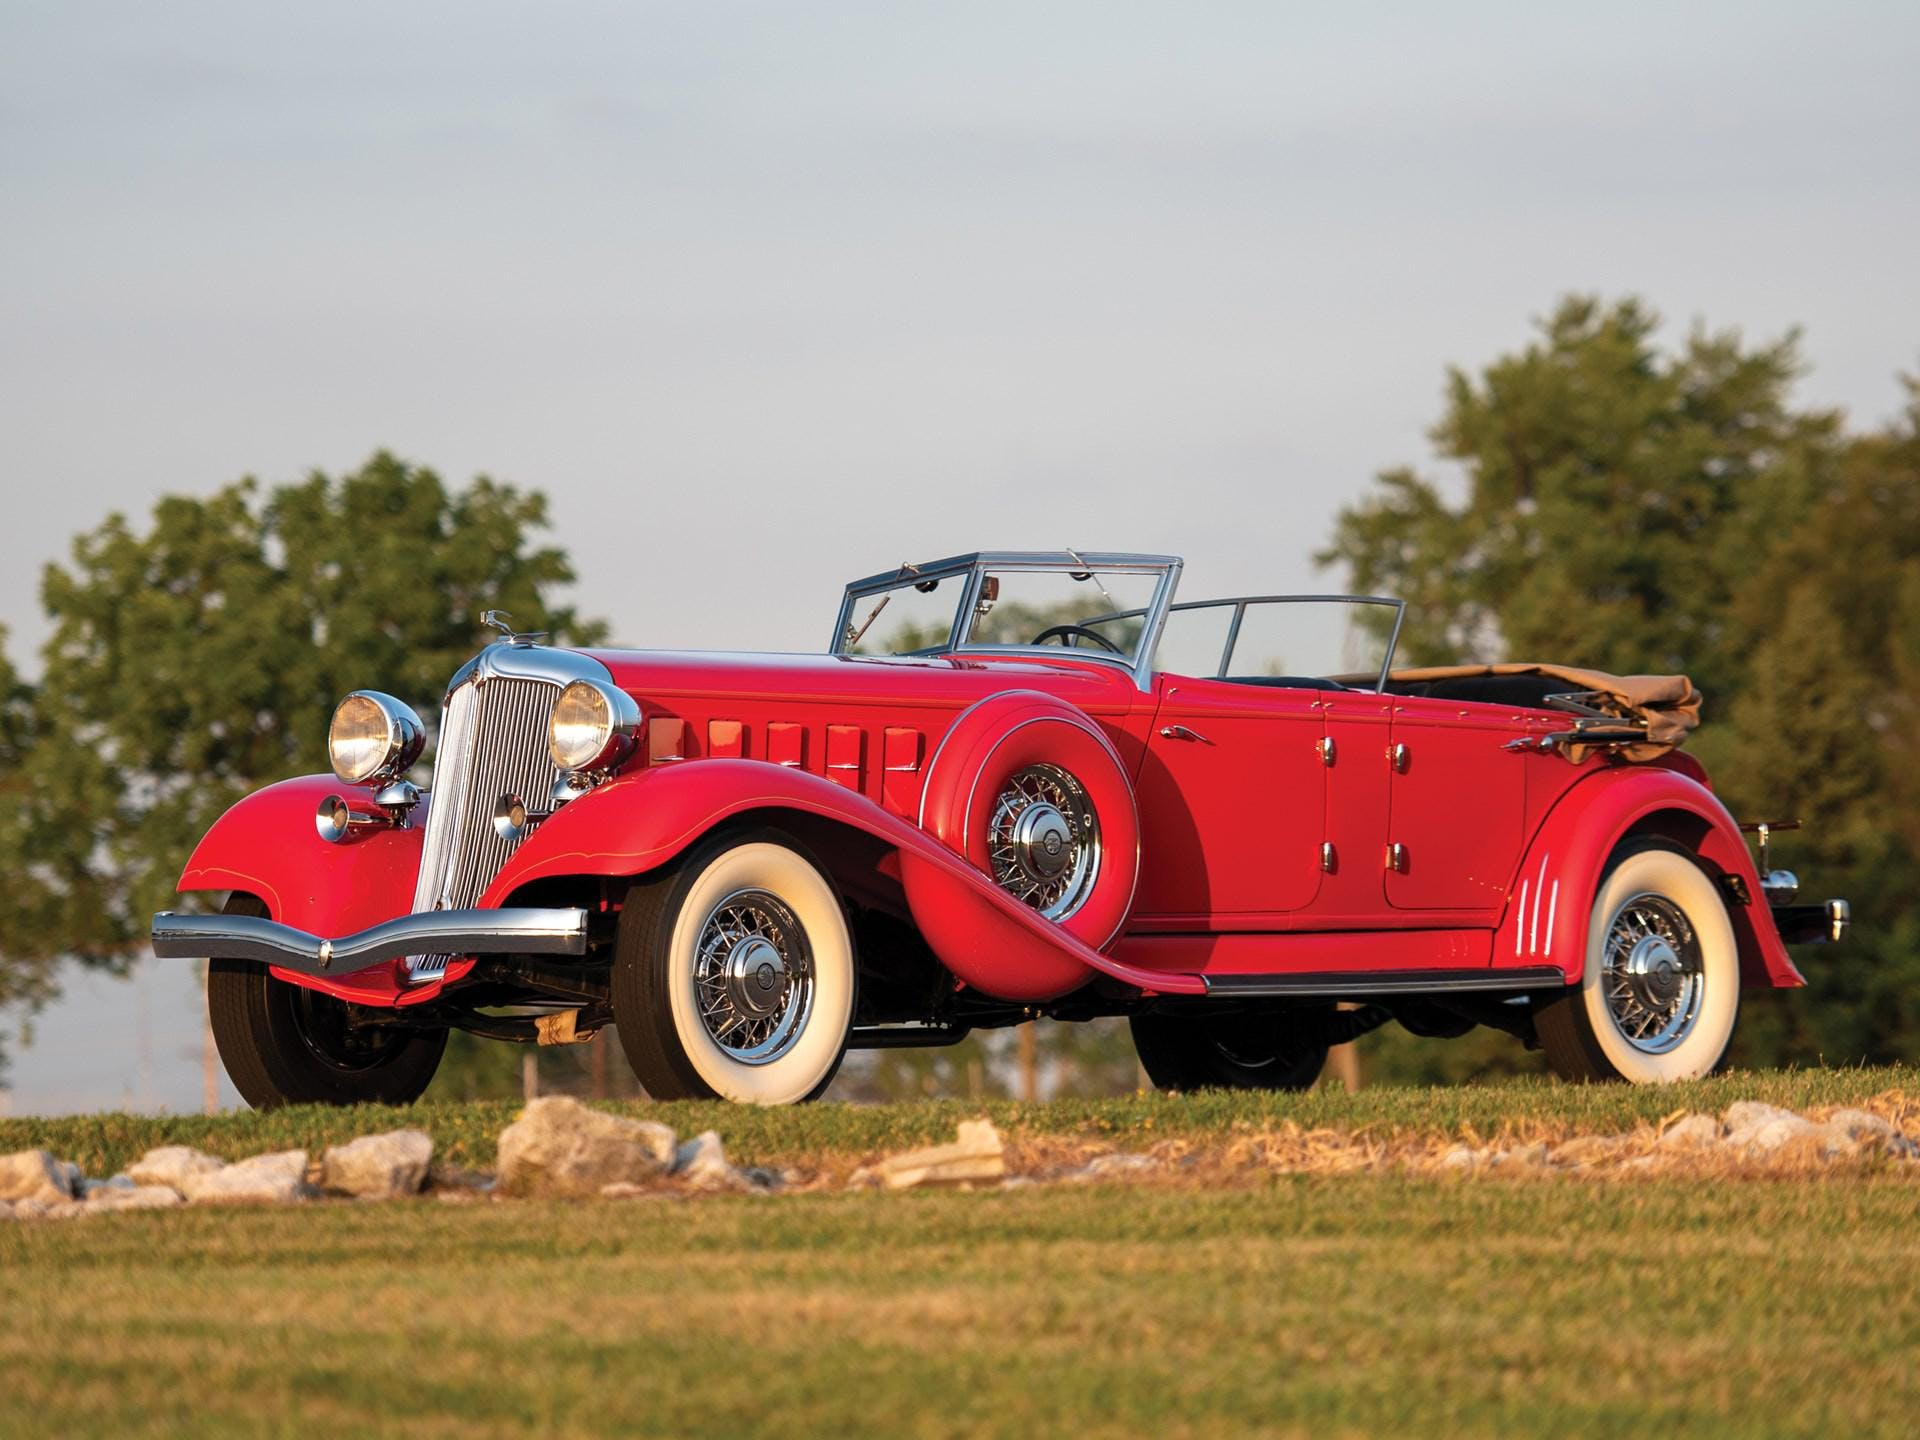 1933 Chrysler Cl Imperial Dual-Windshield Phaeton by LeBaron